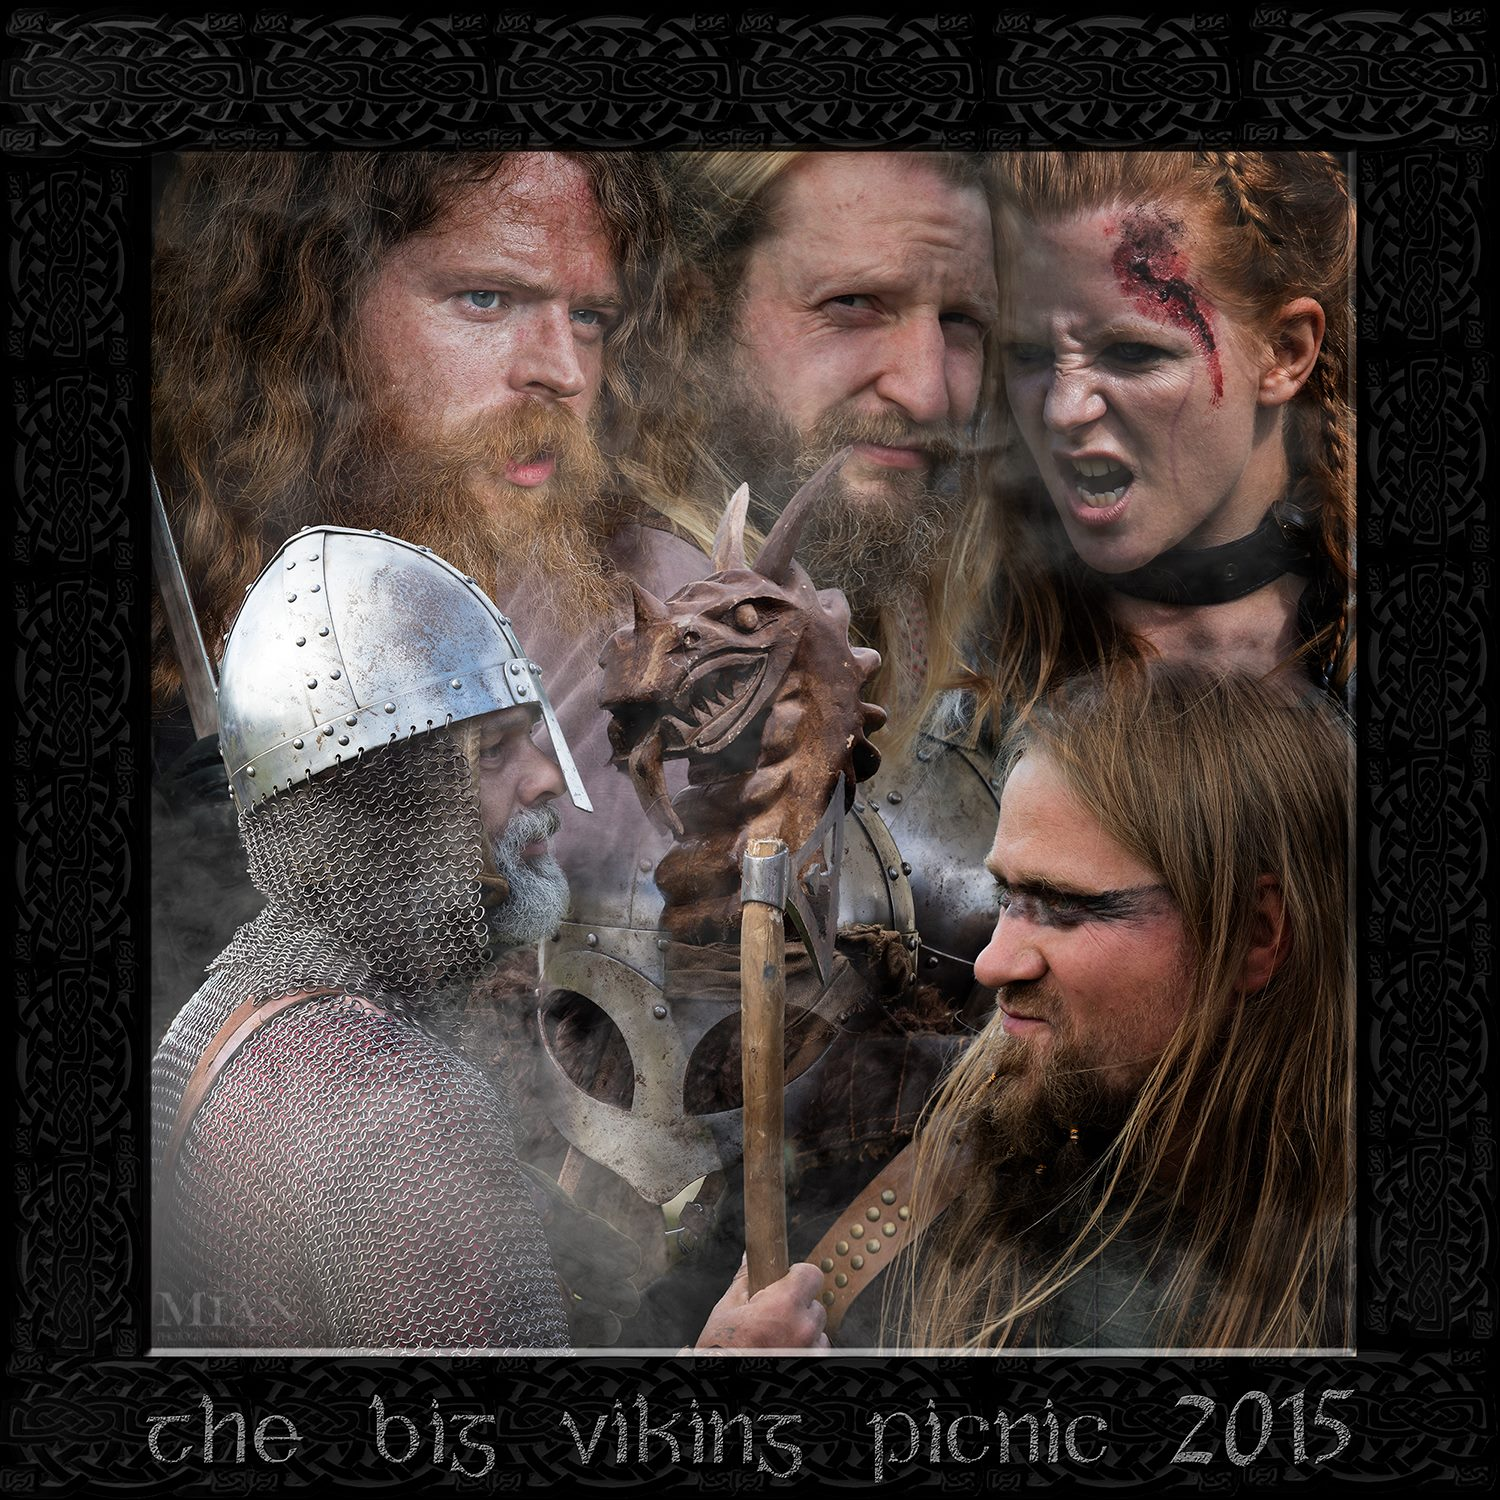 The Big Viking Picnic